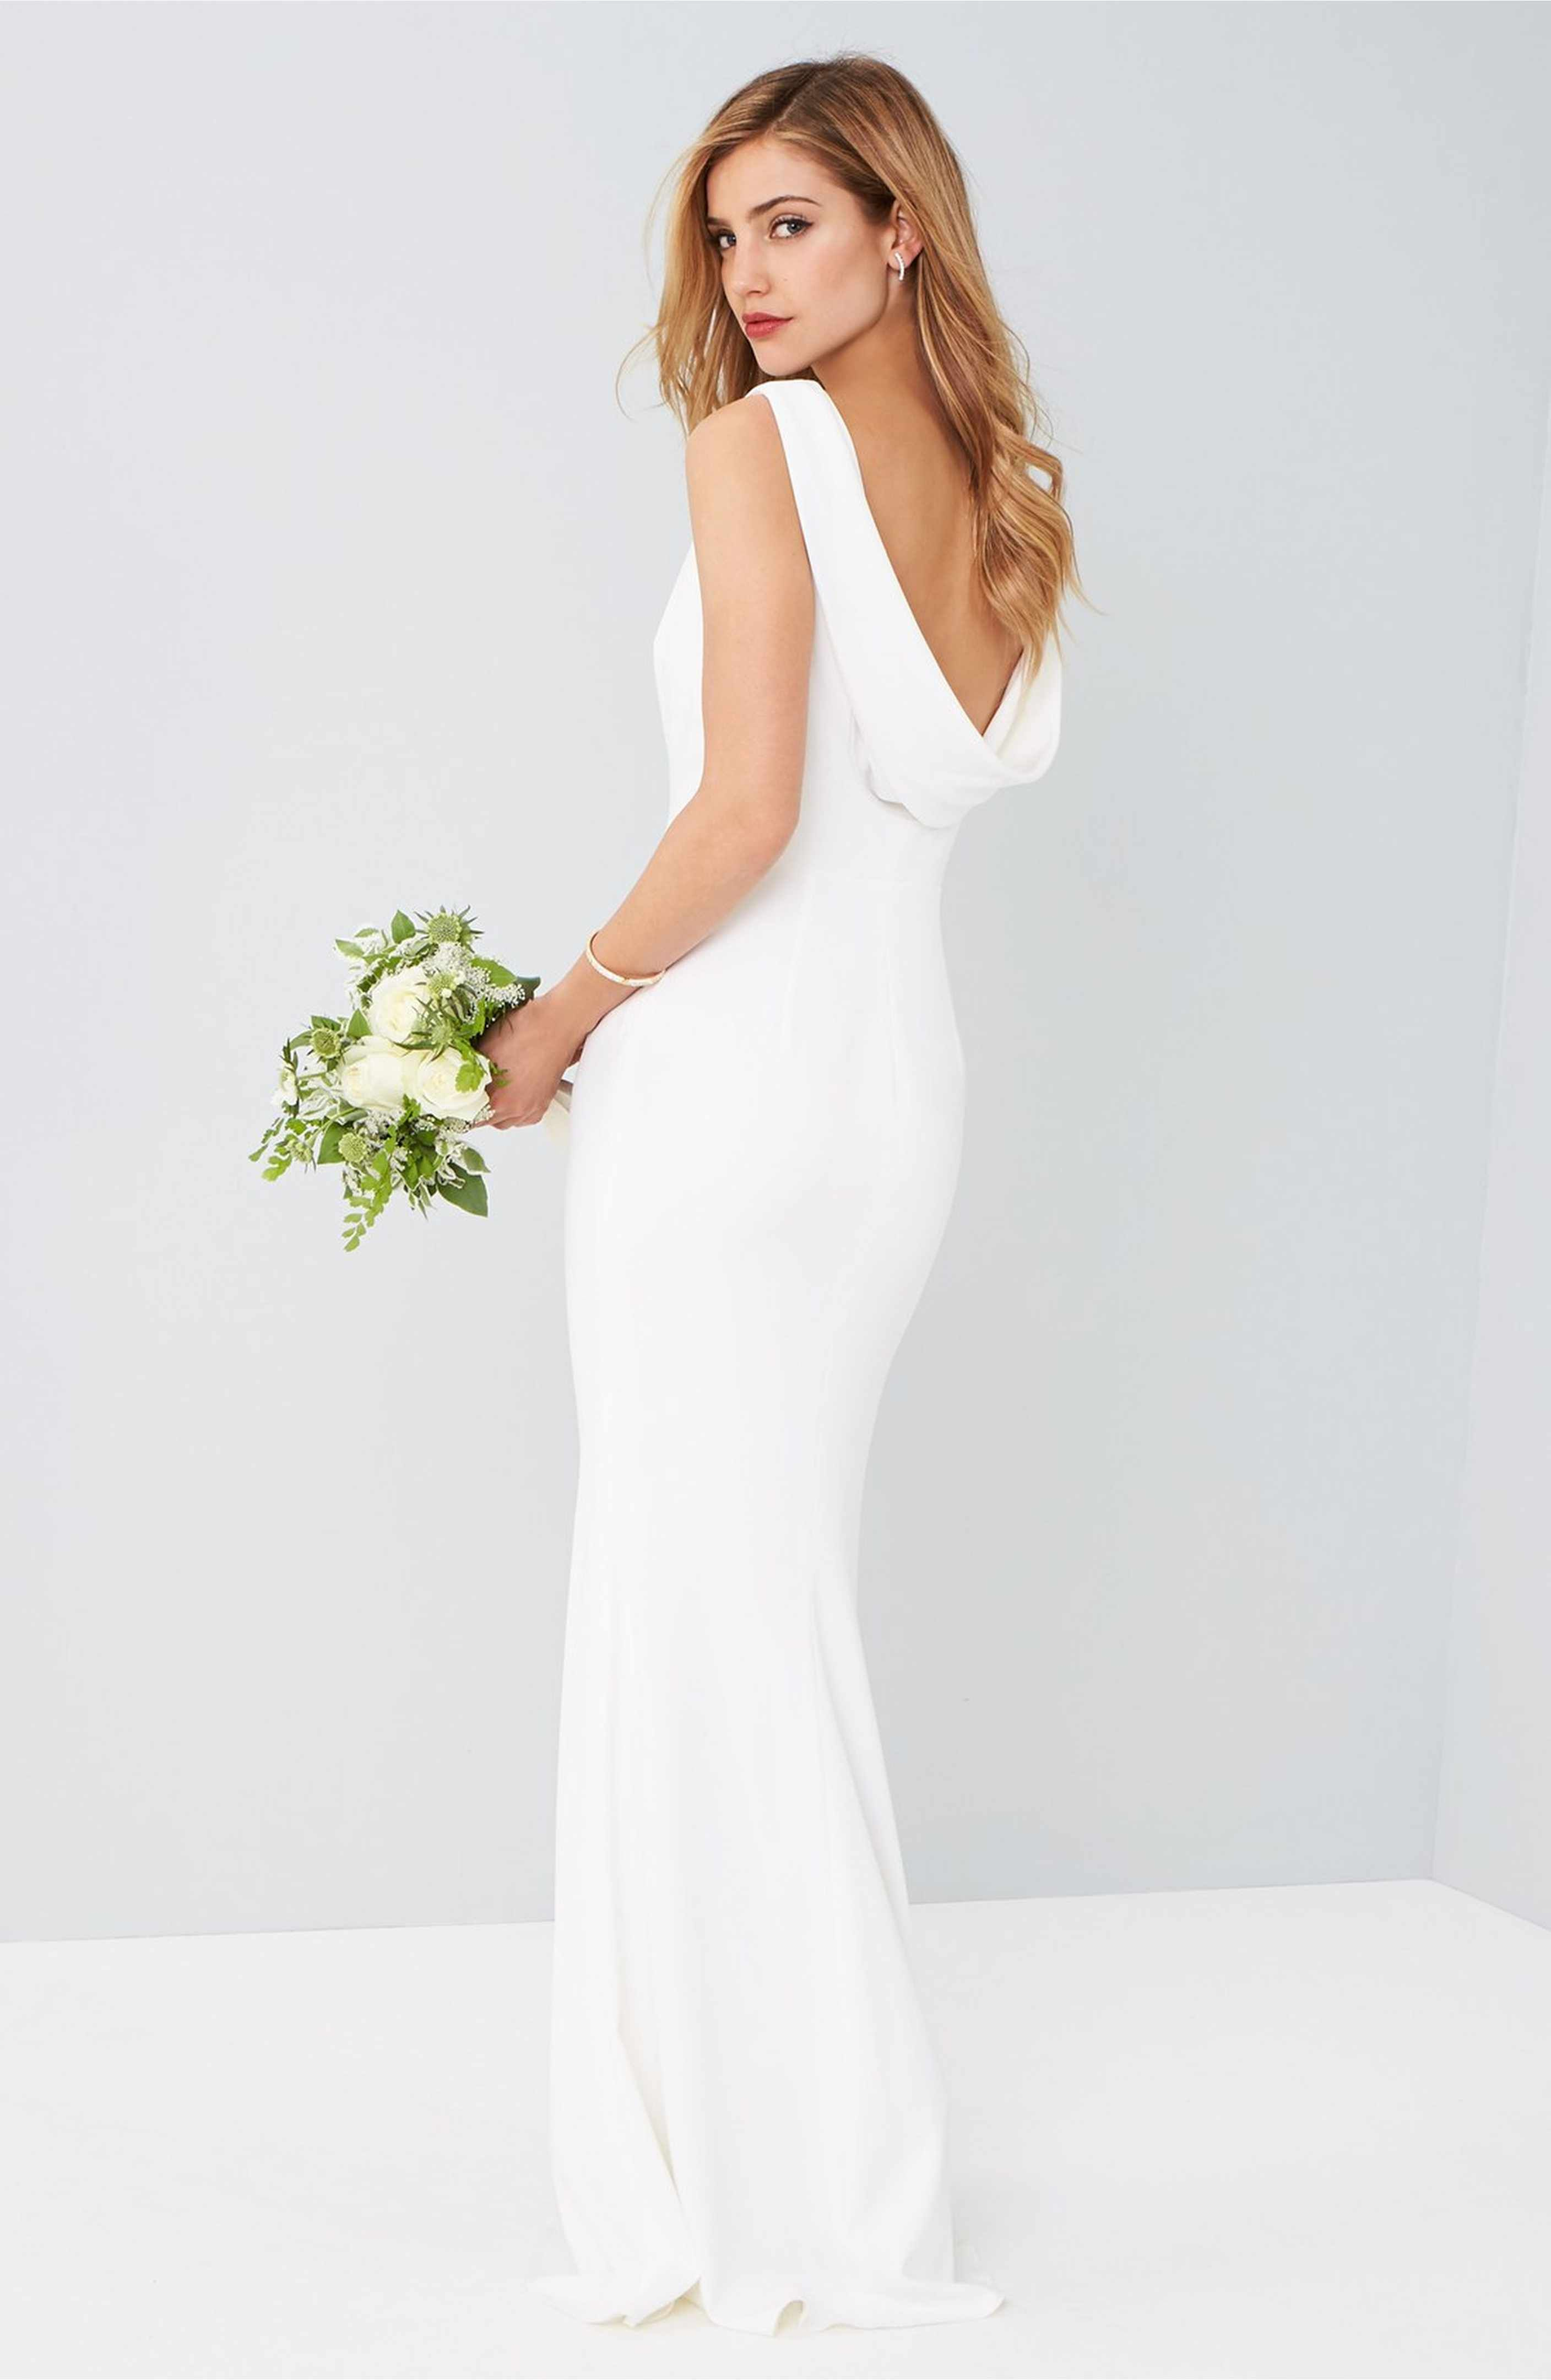 Main Image Katie May Drape Back Crepe Gown Hot Prom Dress Gowns Dresses Wedding Dresses